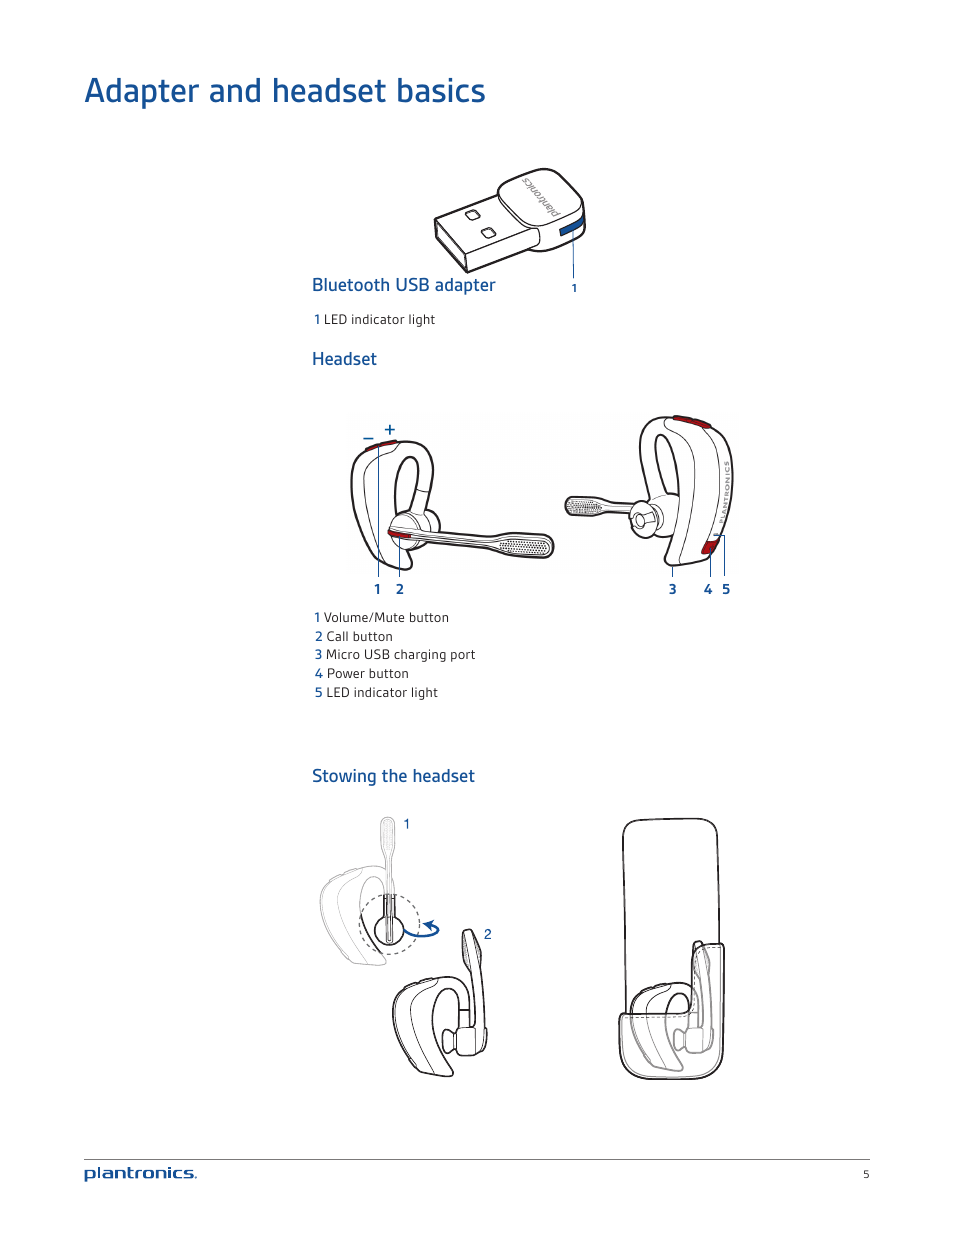 Adapter and headset basics, Bluetooth usb adapter, Headset